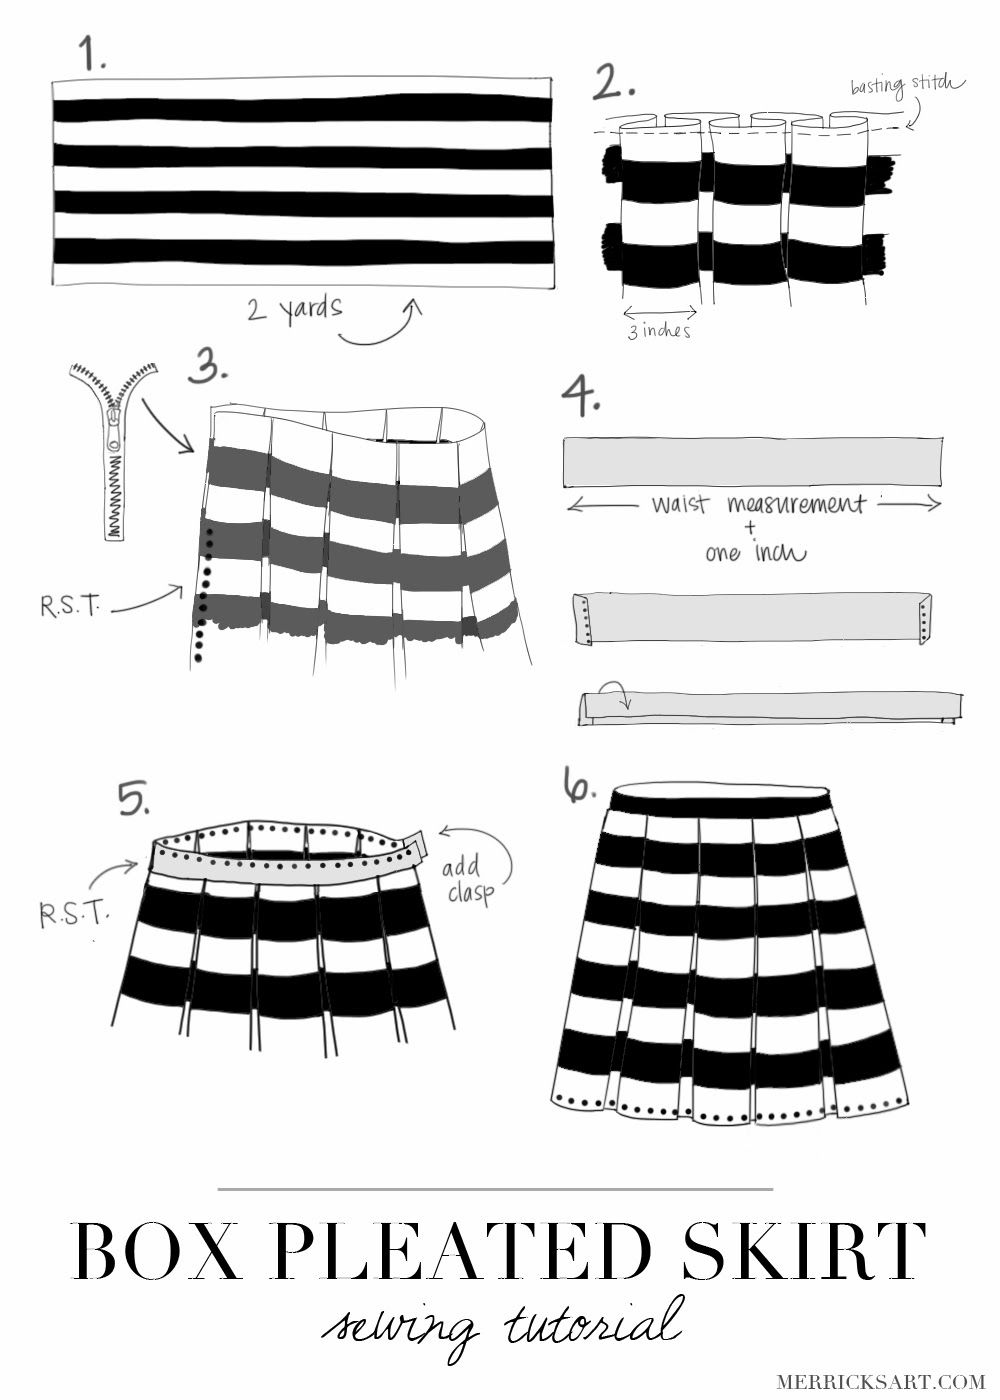 Box Pleated Skirt Tutorial From Merricks Art Sewing Howto